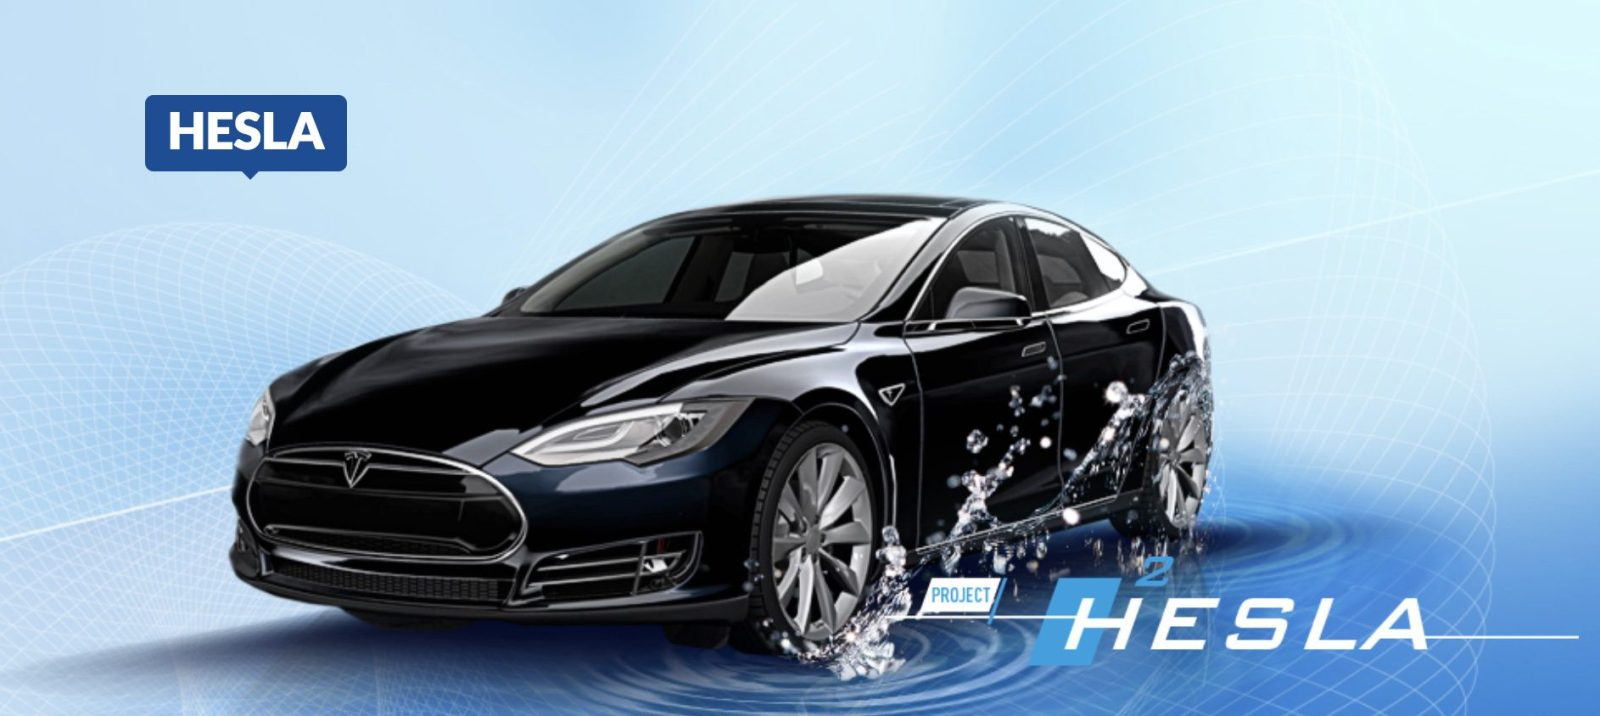 Gas Company Claims To Have Converted A Tesla Hydrogen Fuel Cells